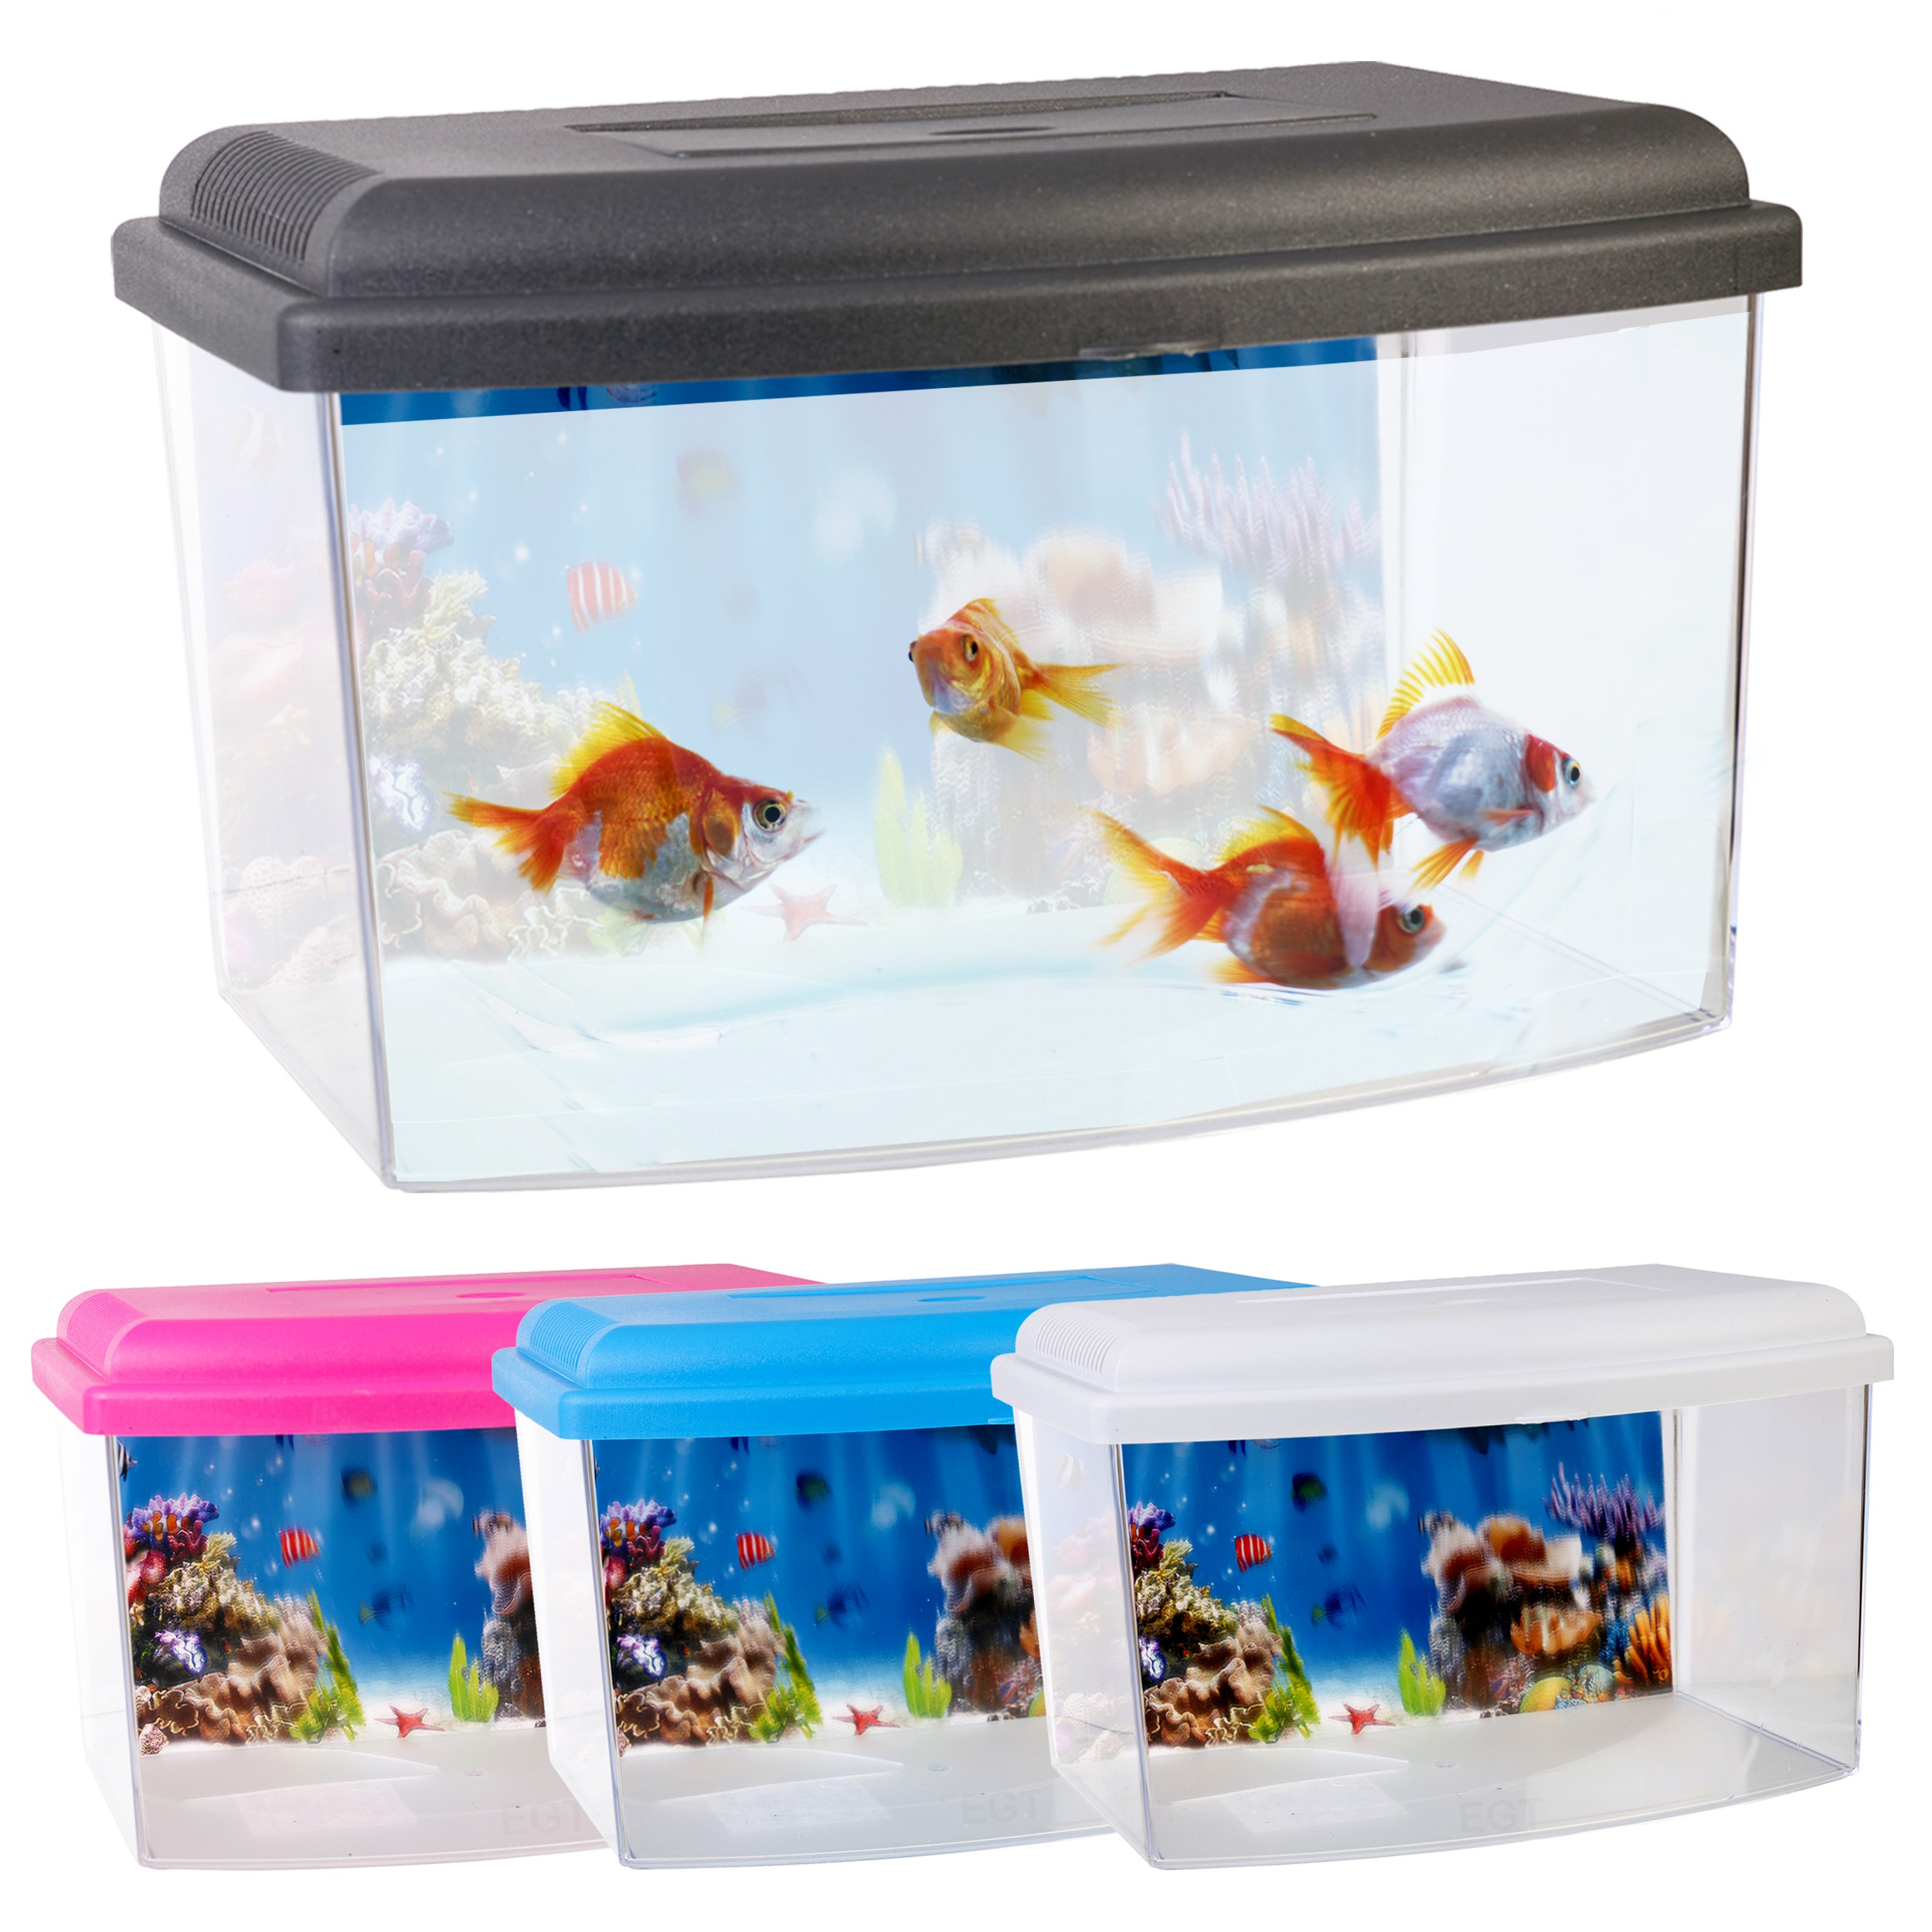 Starter Fish Tank : Childs Starter Aquarium With Lid & Handle 2.5 Litre Capacity Fish Tank ...